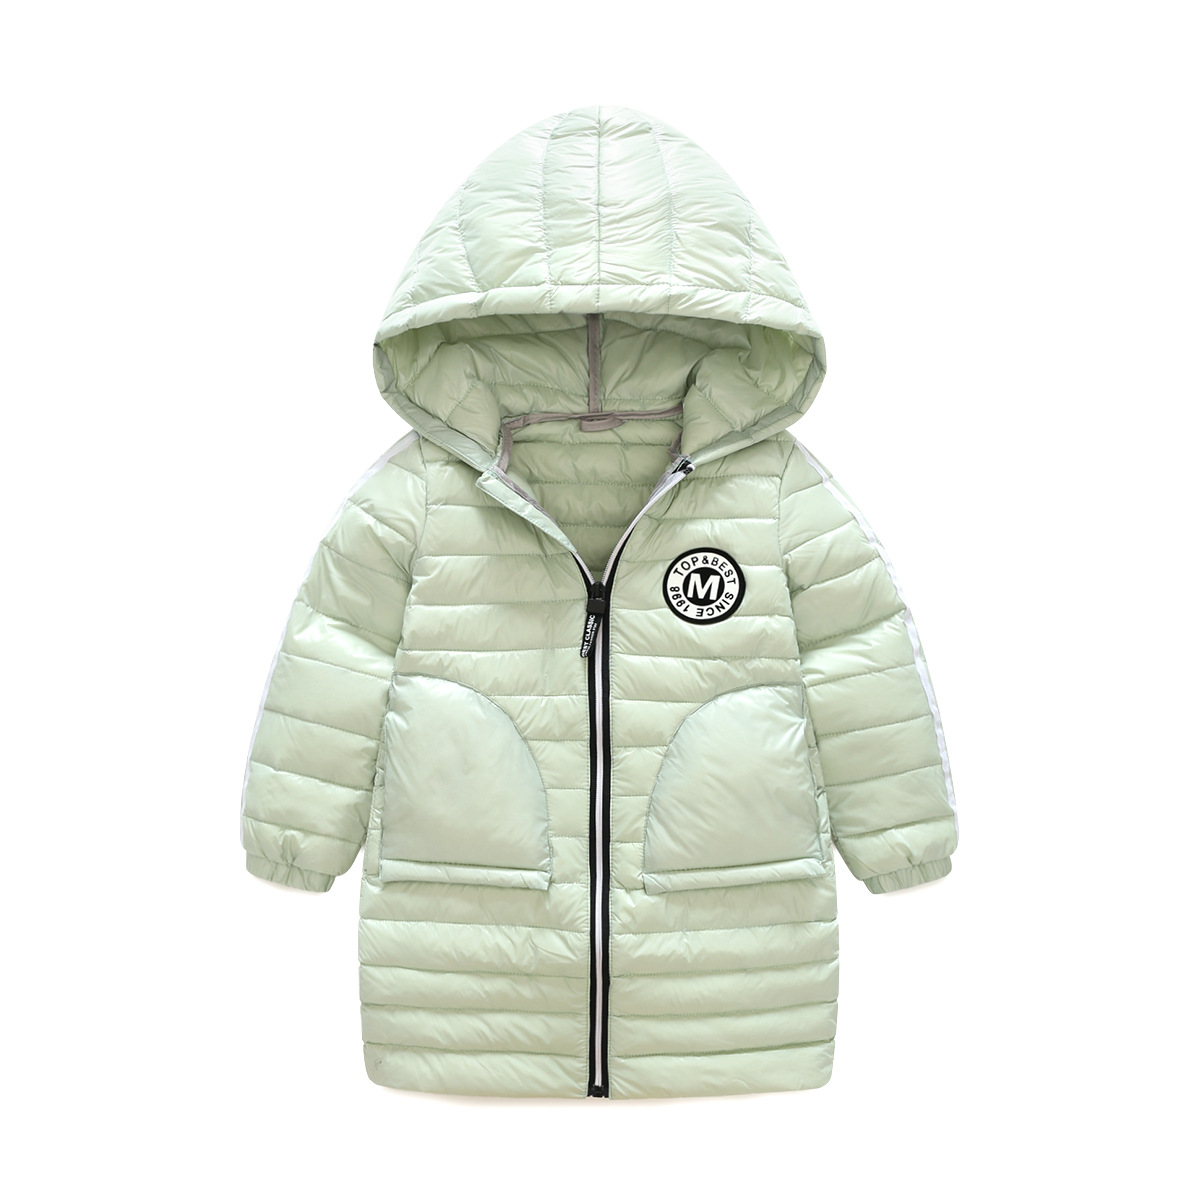 White Down Jacket Girls Small Children Warm Winter New Sleek Hooded Jacket In The Long Section of The Baby Thin Down Jacket Girl 2017 winter down jacket male korean version of self cultivation hooded thick in the long fashion trend of youth style downjacket